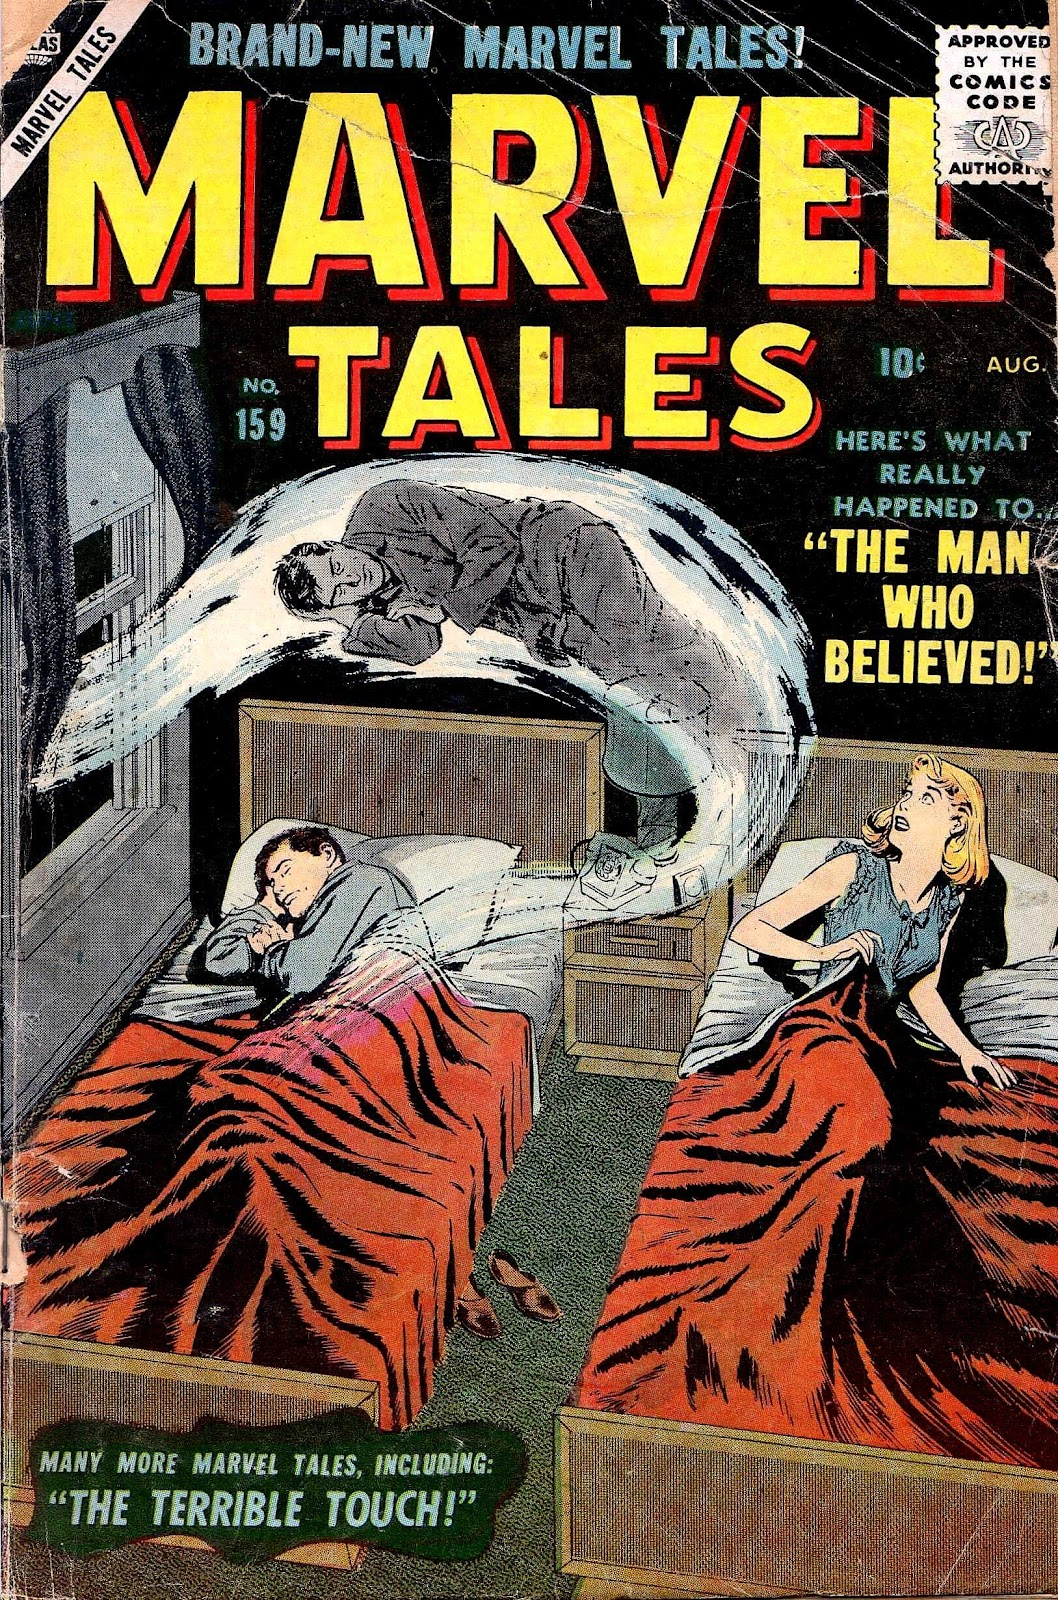 Marvel Tales (1949) issue 159 - Page 1